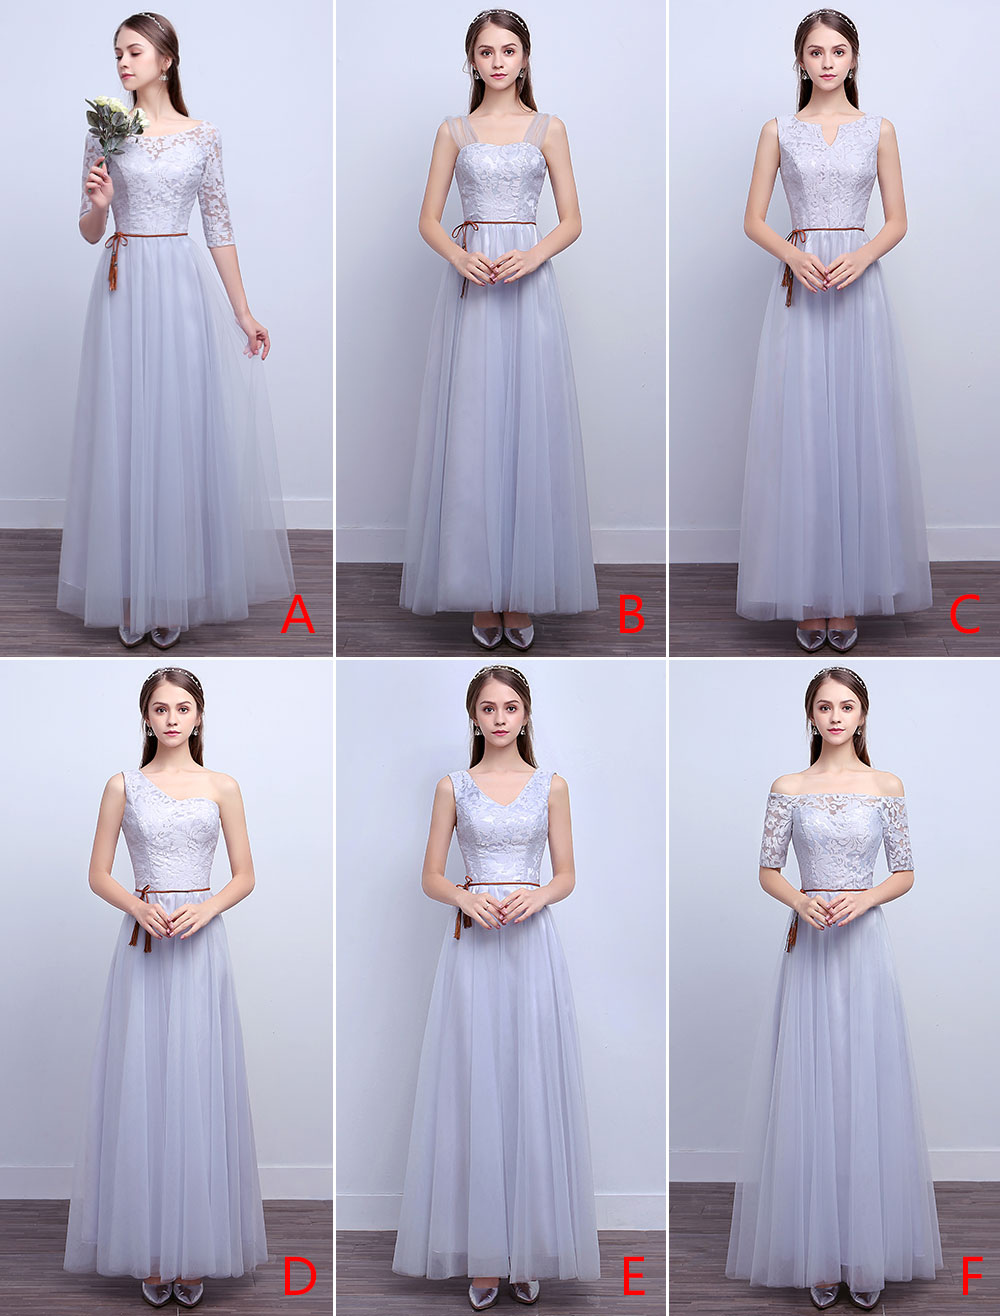 Silver Bridesmaid Dresses Long Lace Tulle A Line Ankle Length Prom Dresses